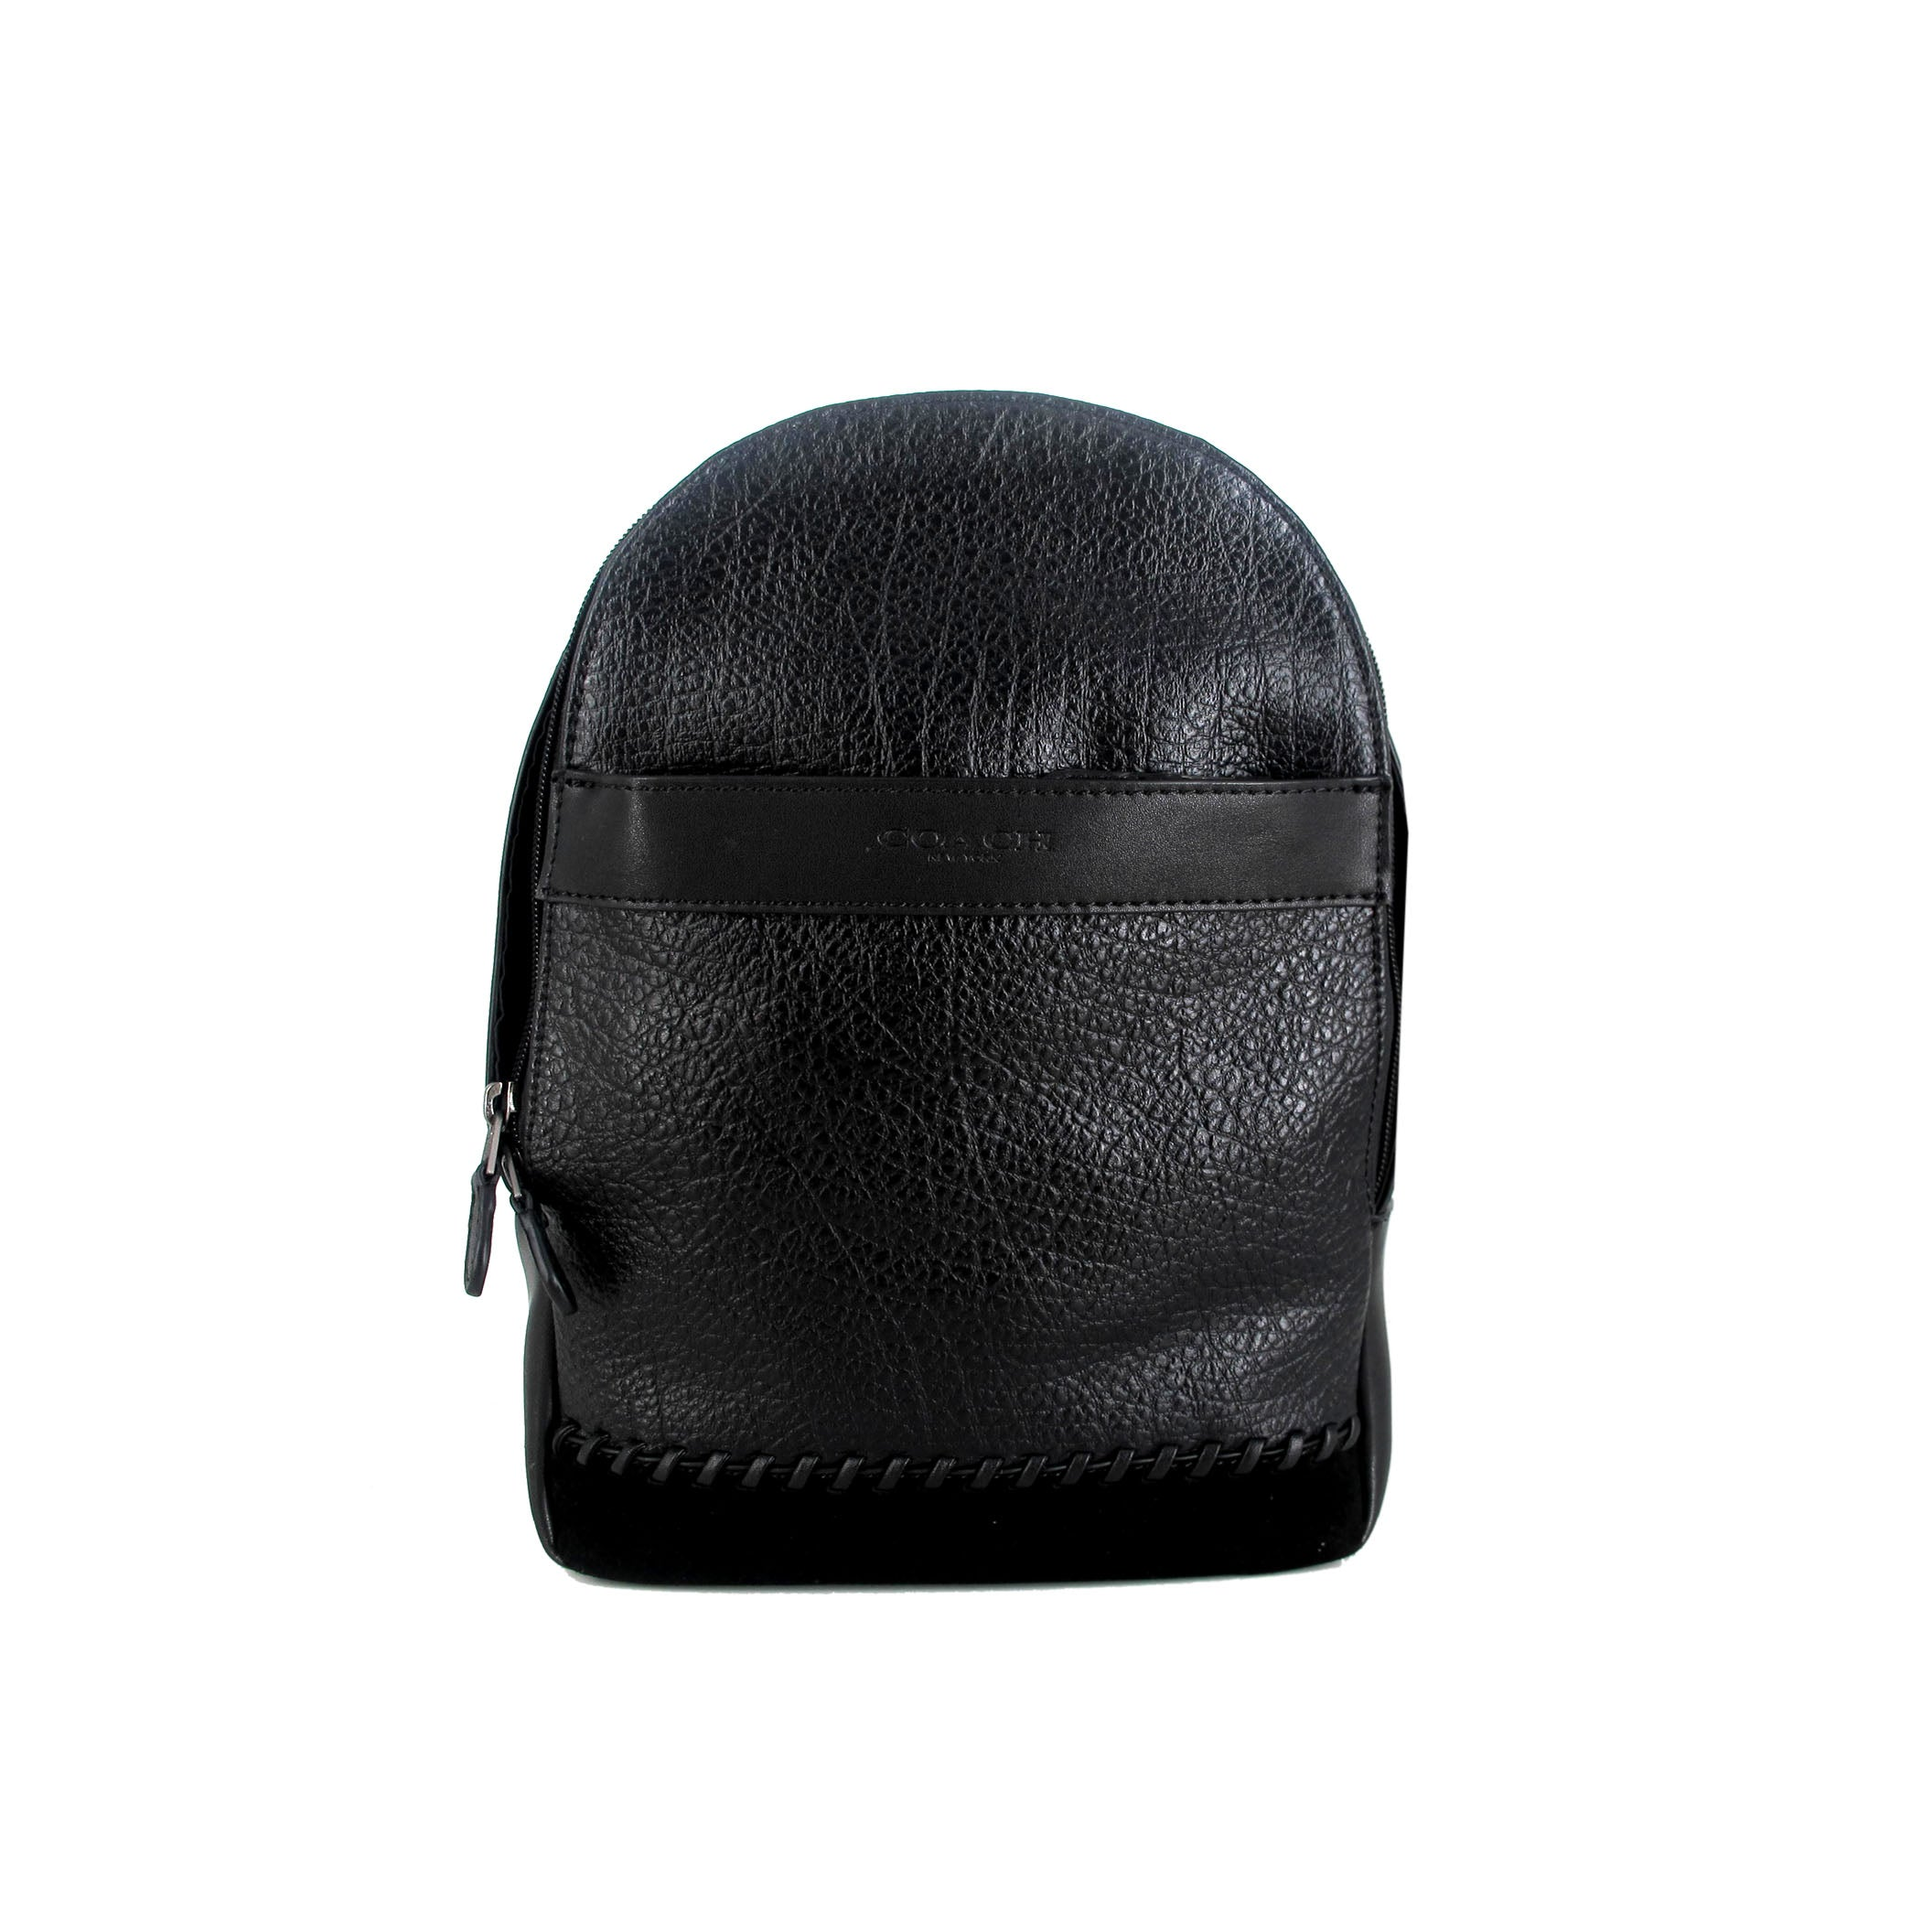 Charles Textured Leather Sling Backpack